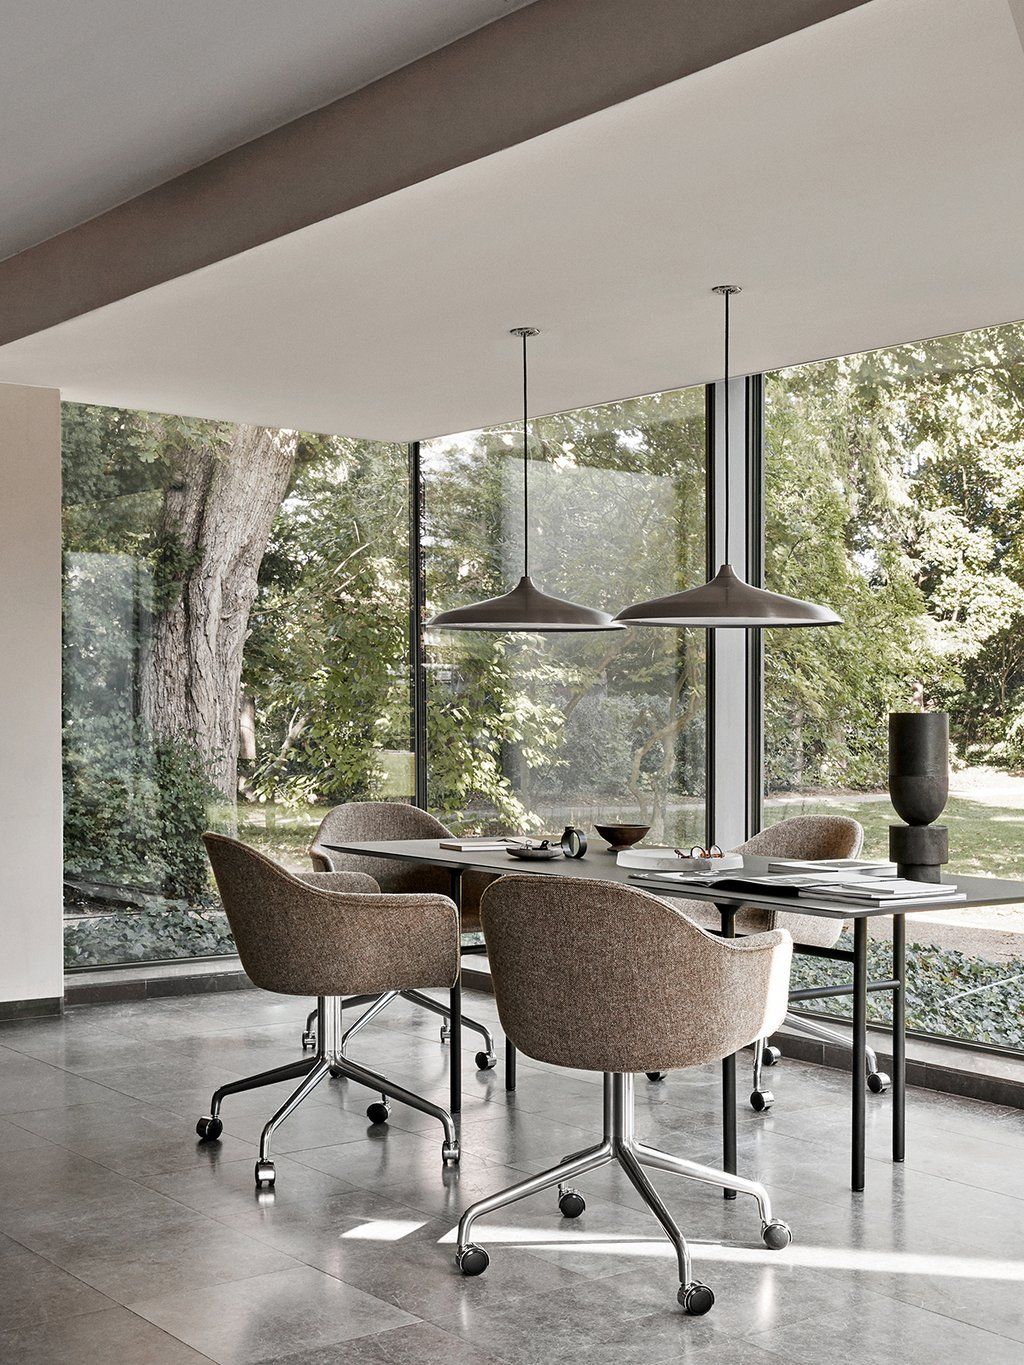 Designer Upholstered Dining Room Chairs, Padded Dining Room Chairs With Casters